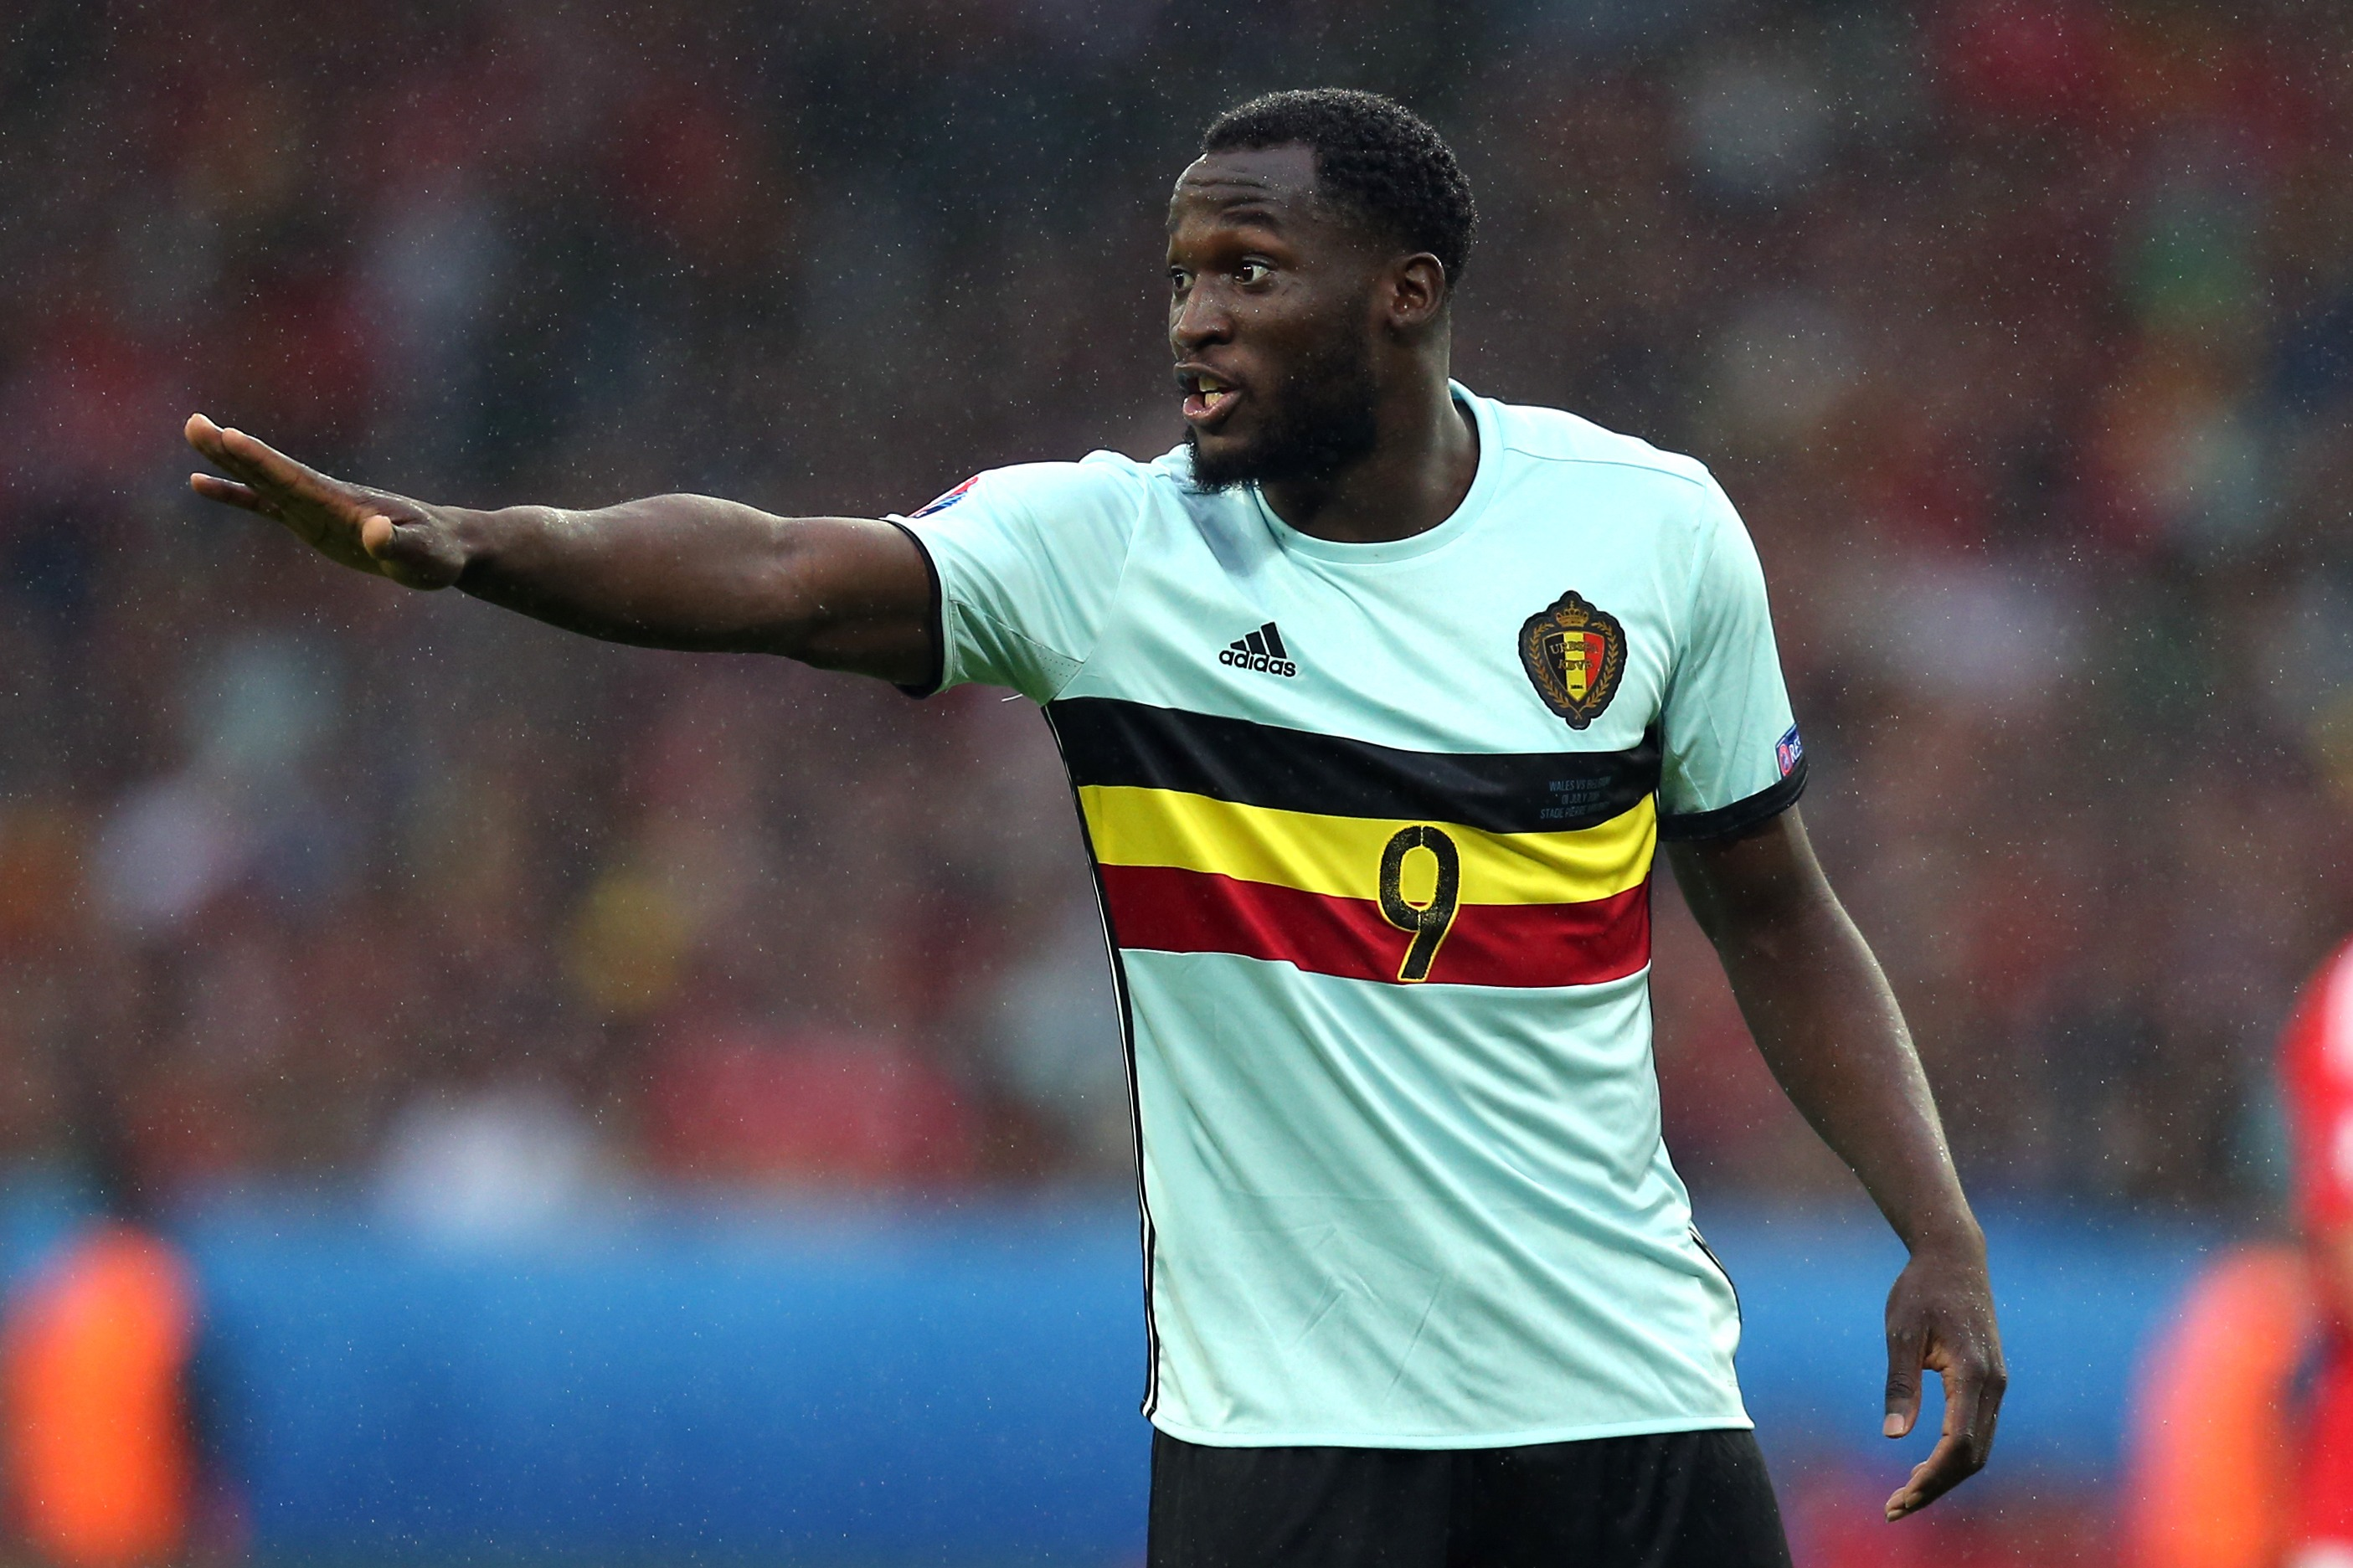 Romelu Lukaku set for crunch talks with Everton after Chelsea baulk at £75m asking price